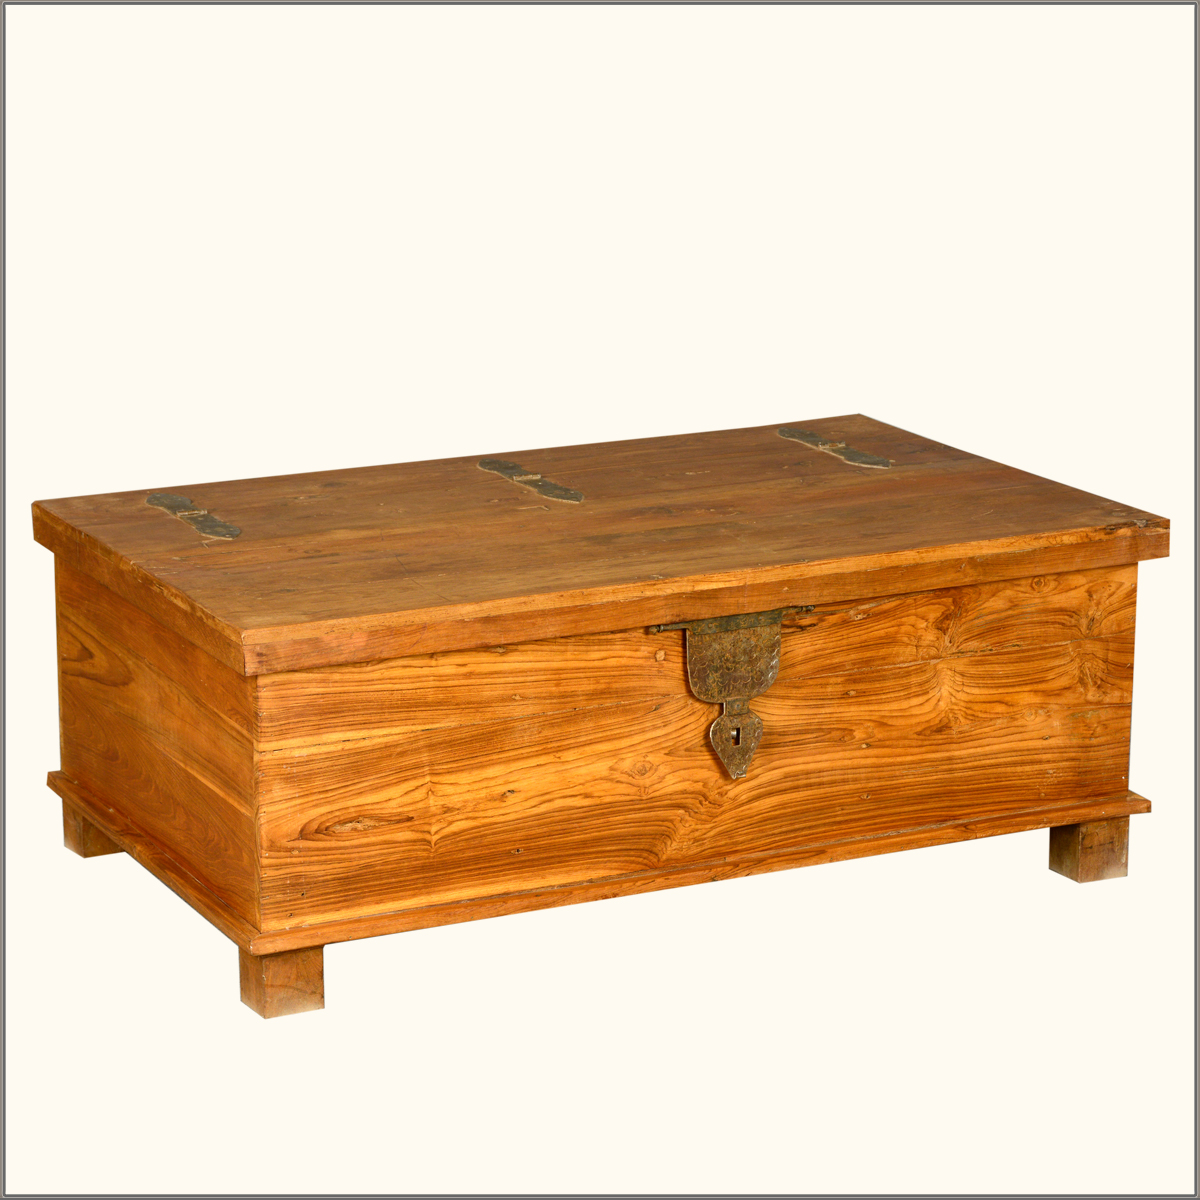 Rustic Teak Wood Wrought Iron Distressed Coffee Table Storage Box Chest Trunk